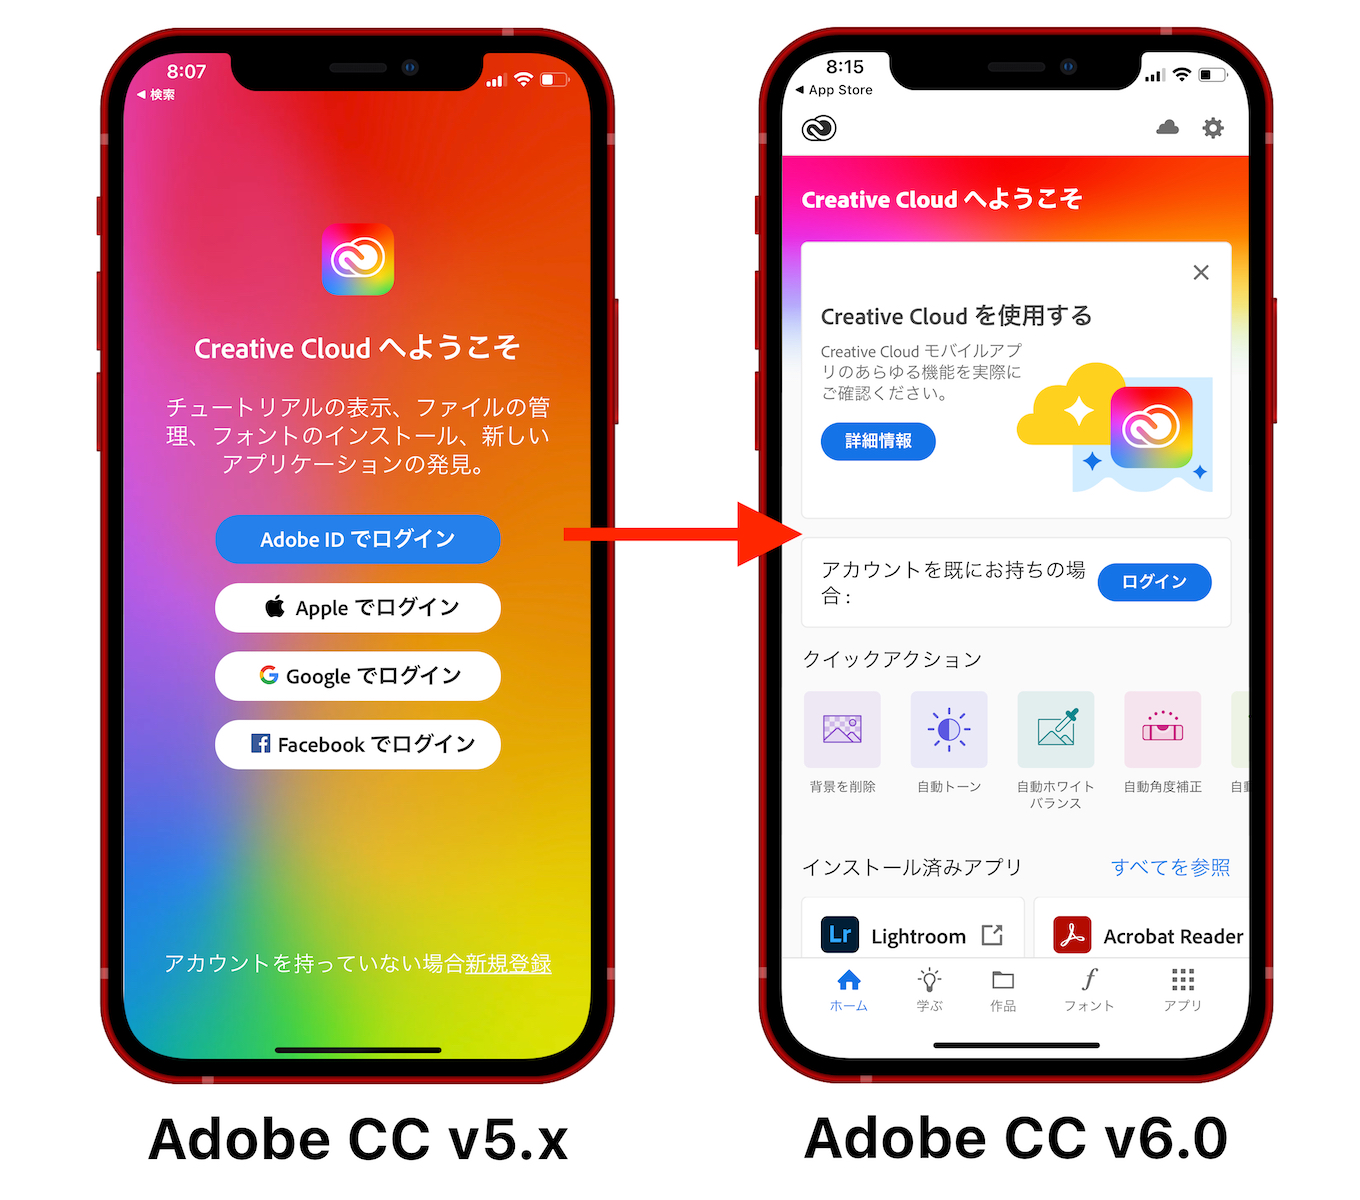 Adobe Creative Cloud for iOS 6.0 no sign in required